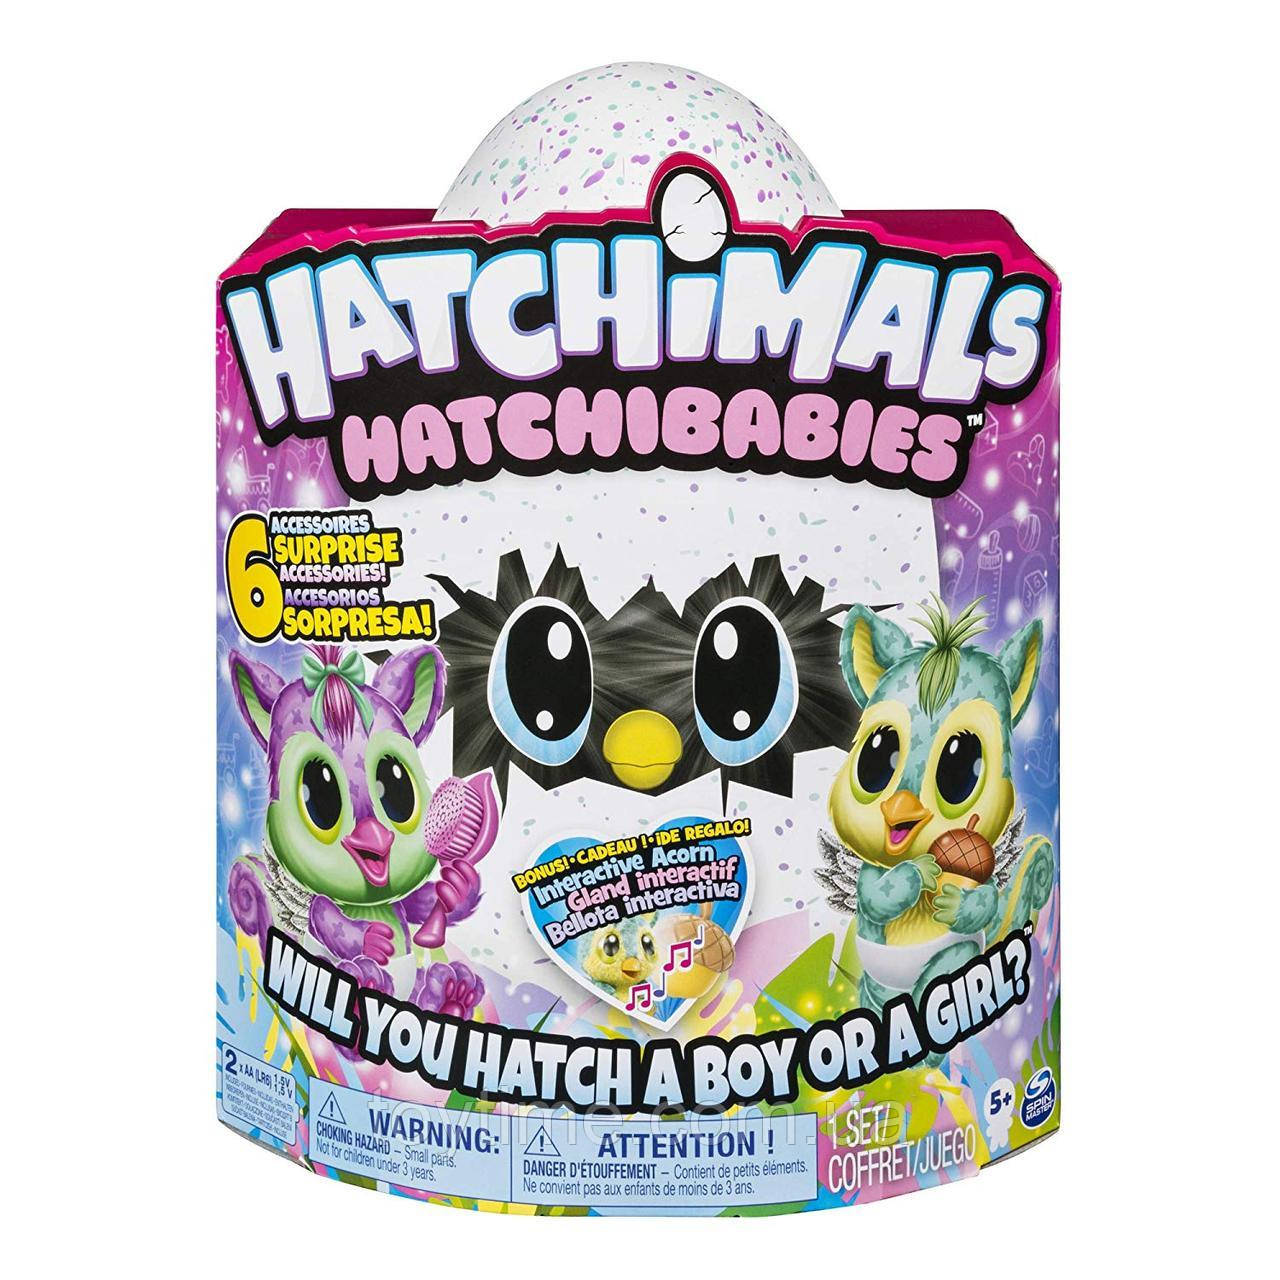 Хэтчималс Хетчибейбиз Chipadee / Hatchimals HatchiBabies Chipadee Hatching Egg